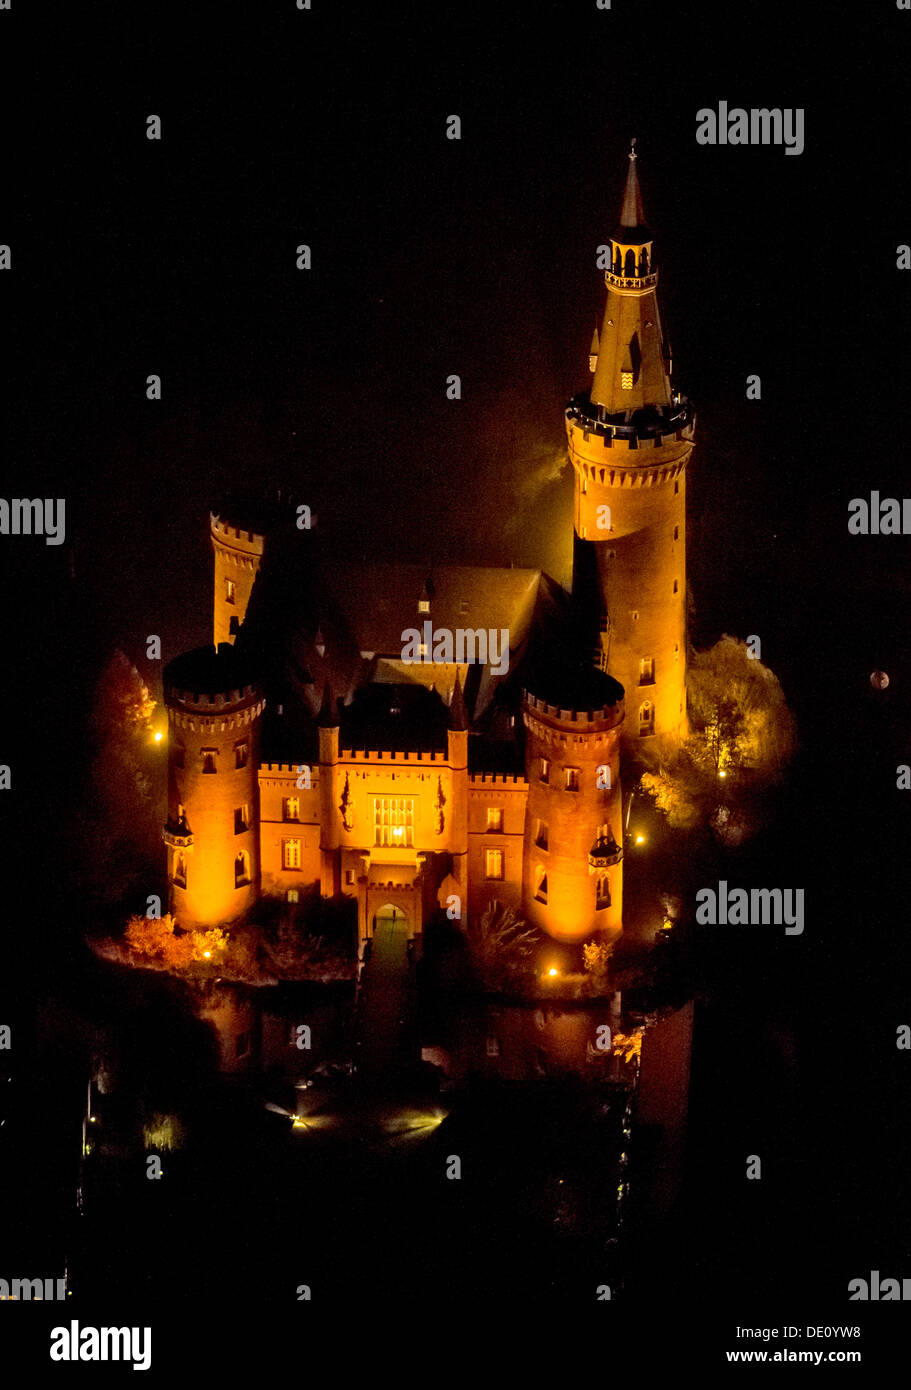 Aerial View Of Moyland Moated Castle Neo Gothic Style Night Shot Bedburg